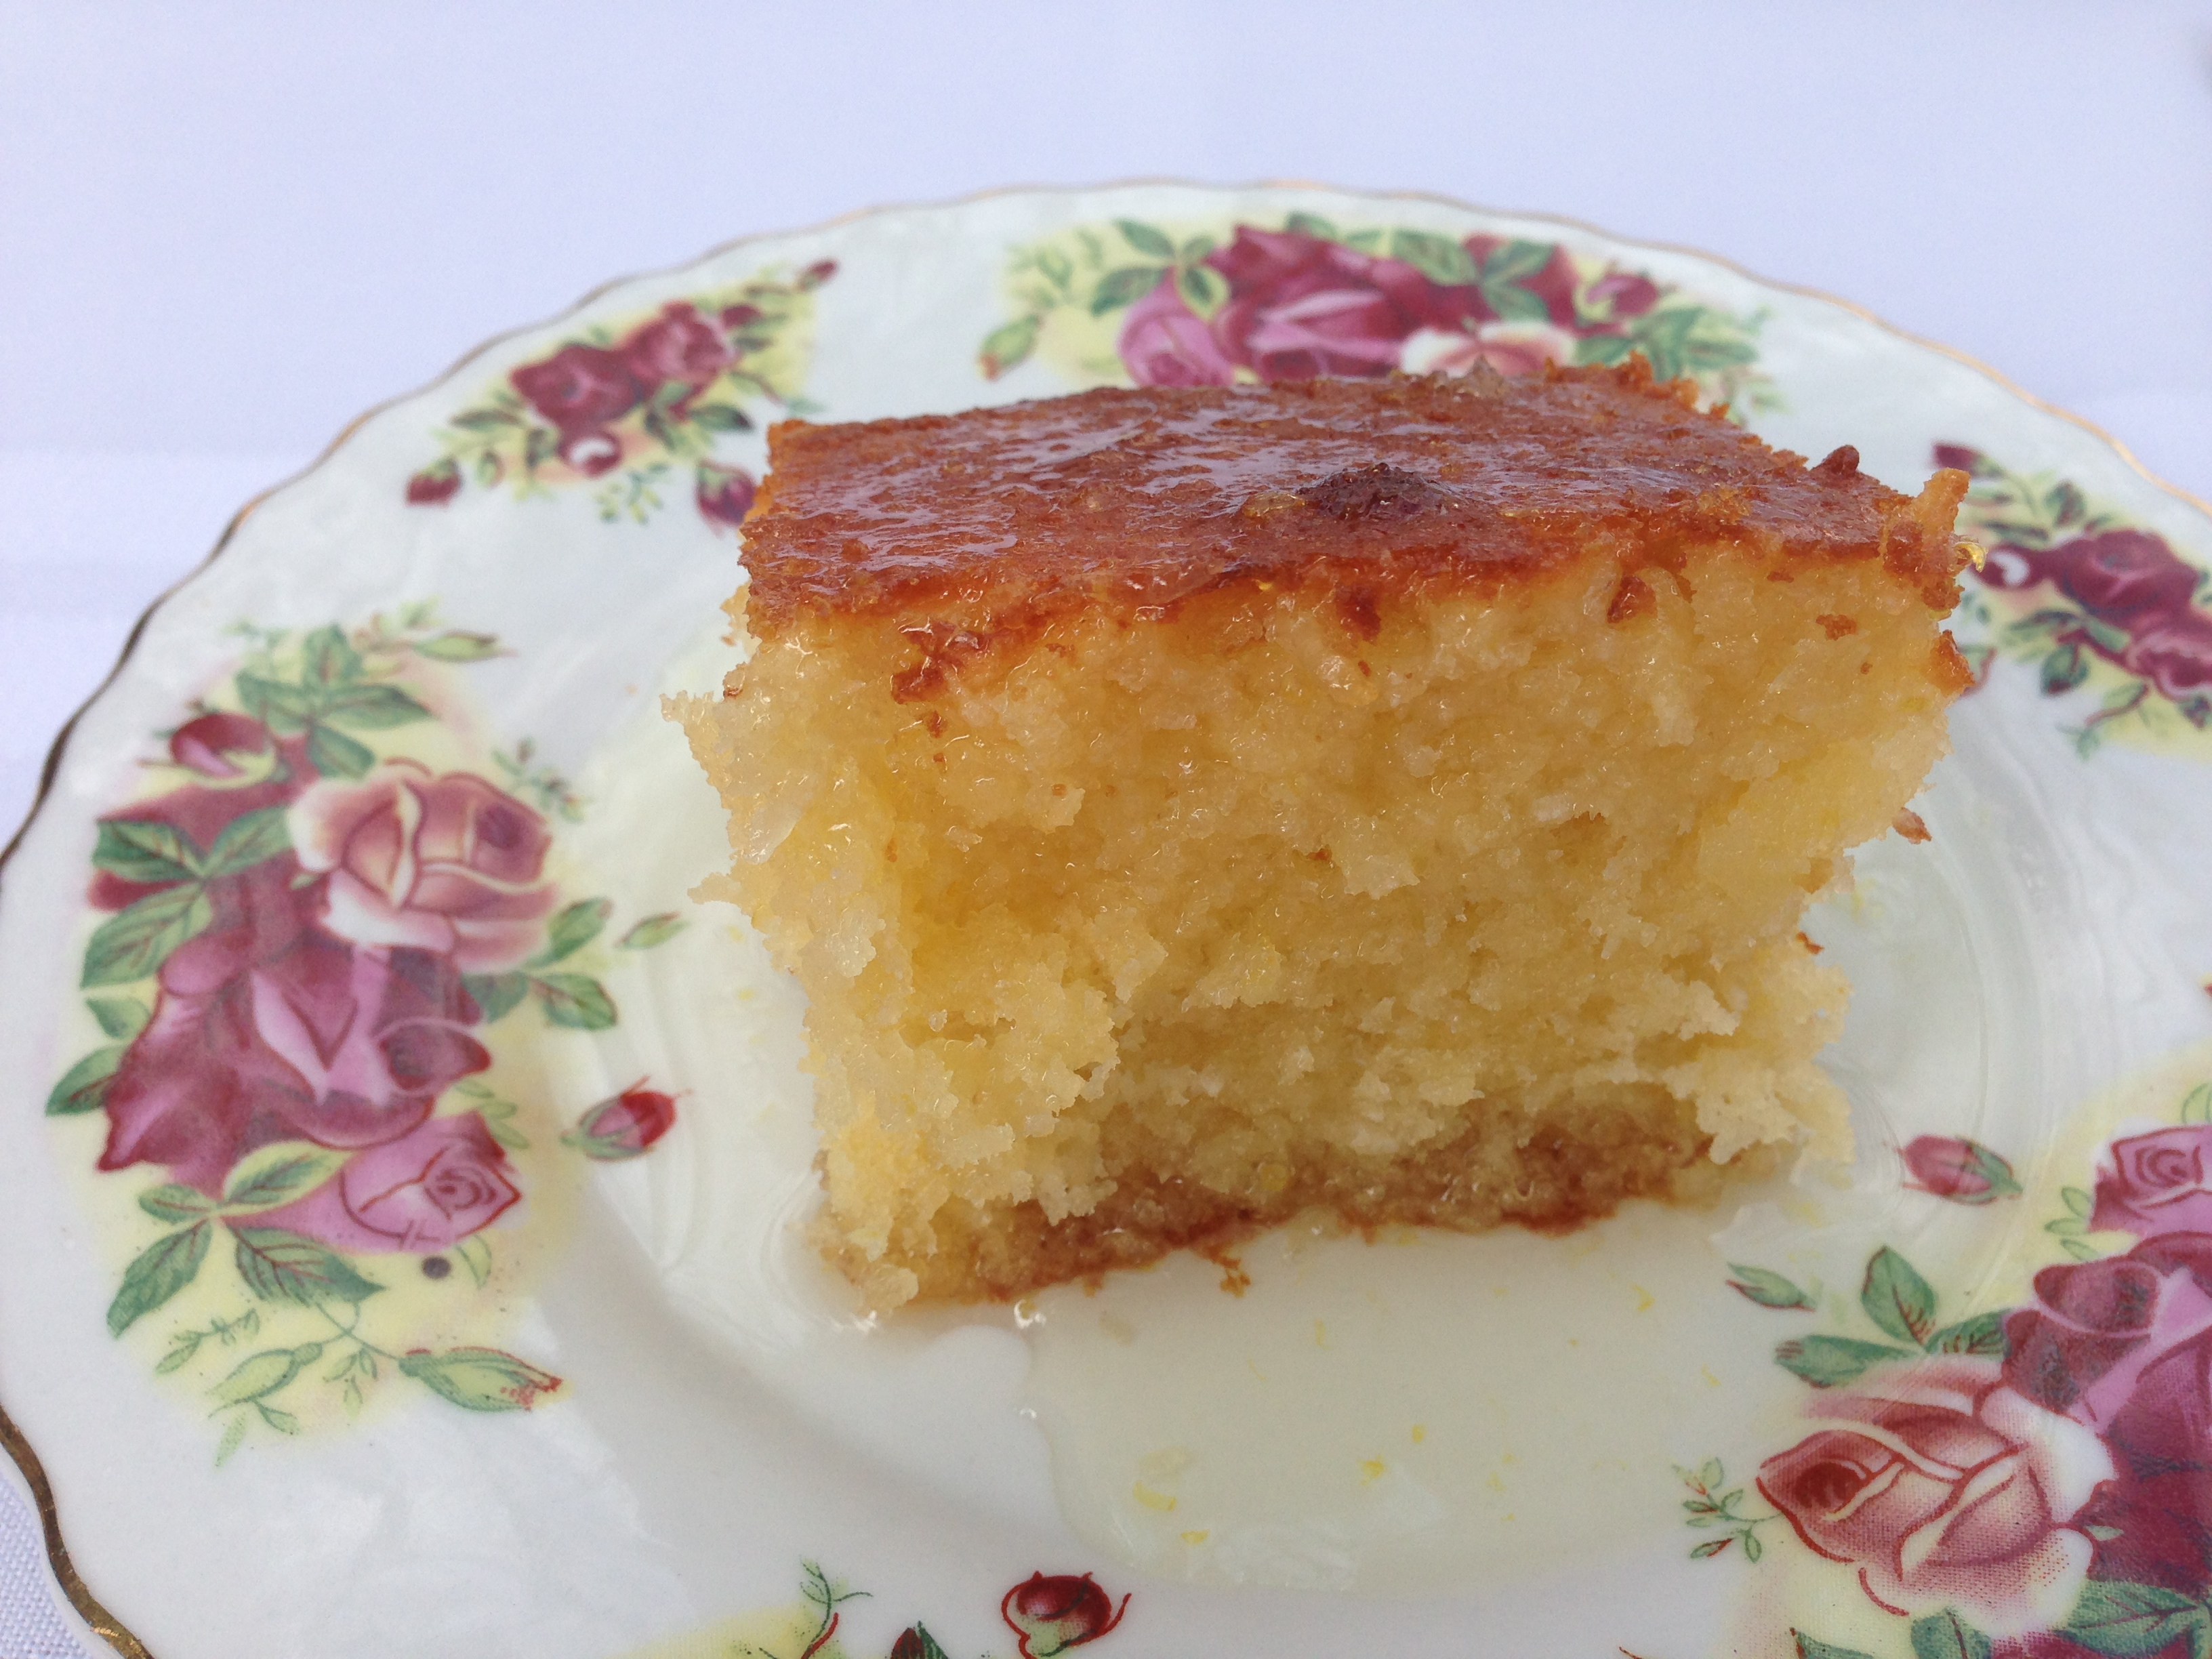 Tea cake recipe donna hay